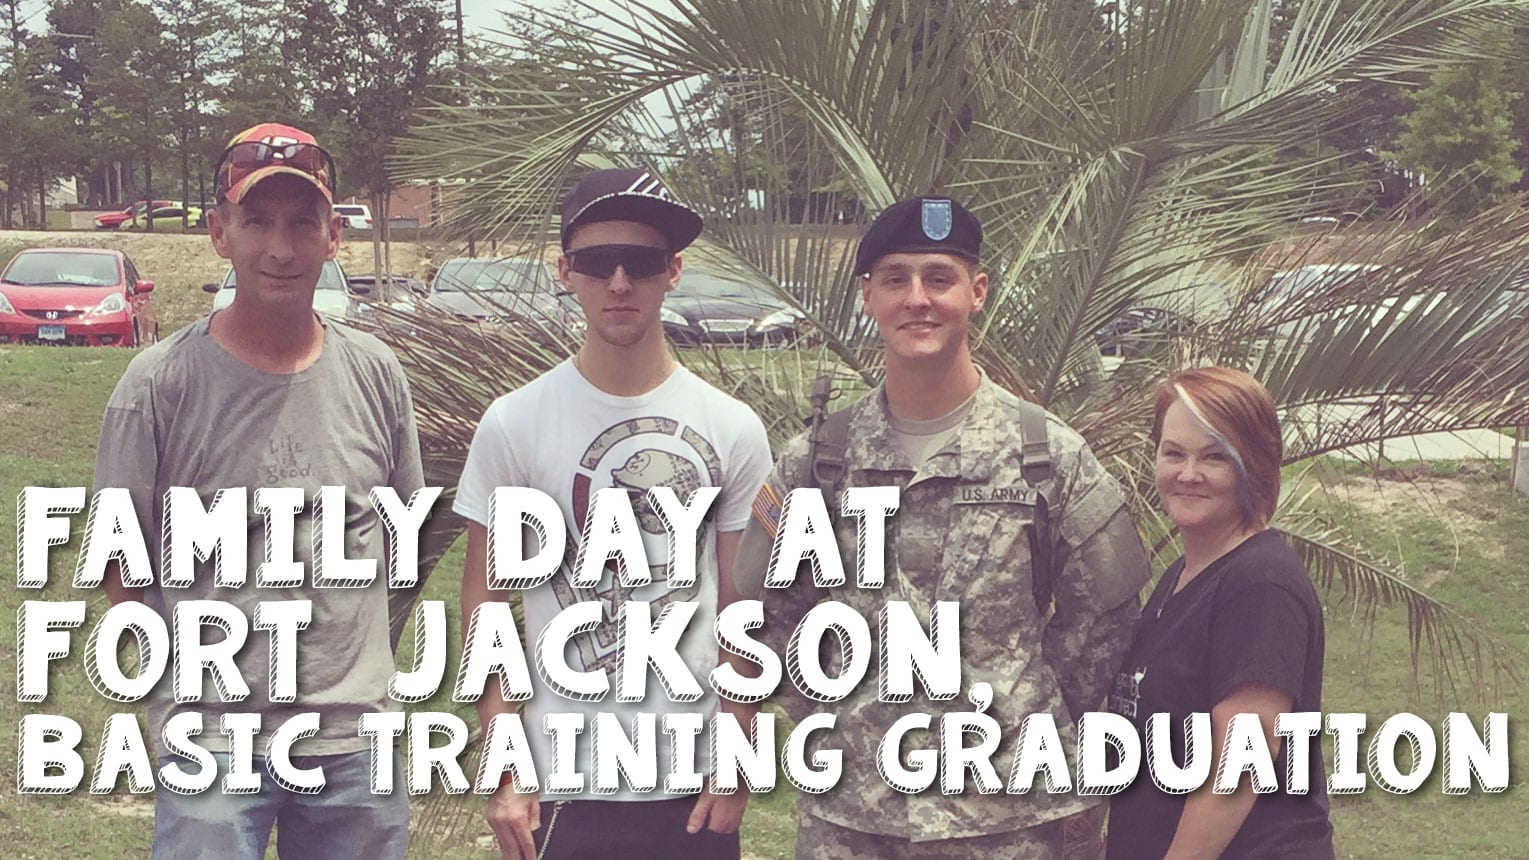 Family Day at Fort Jackson